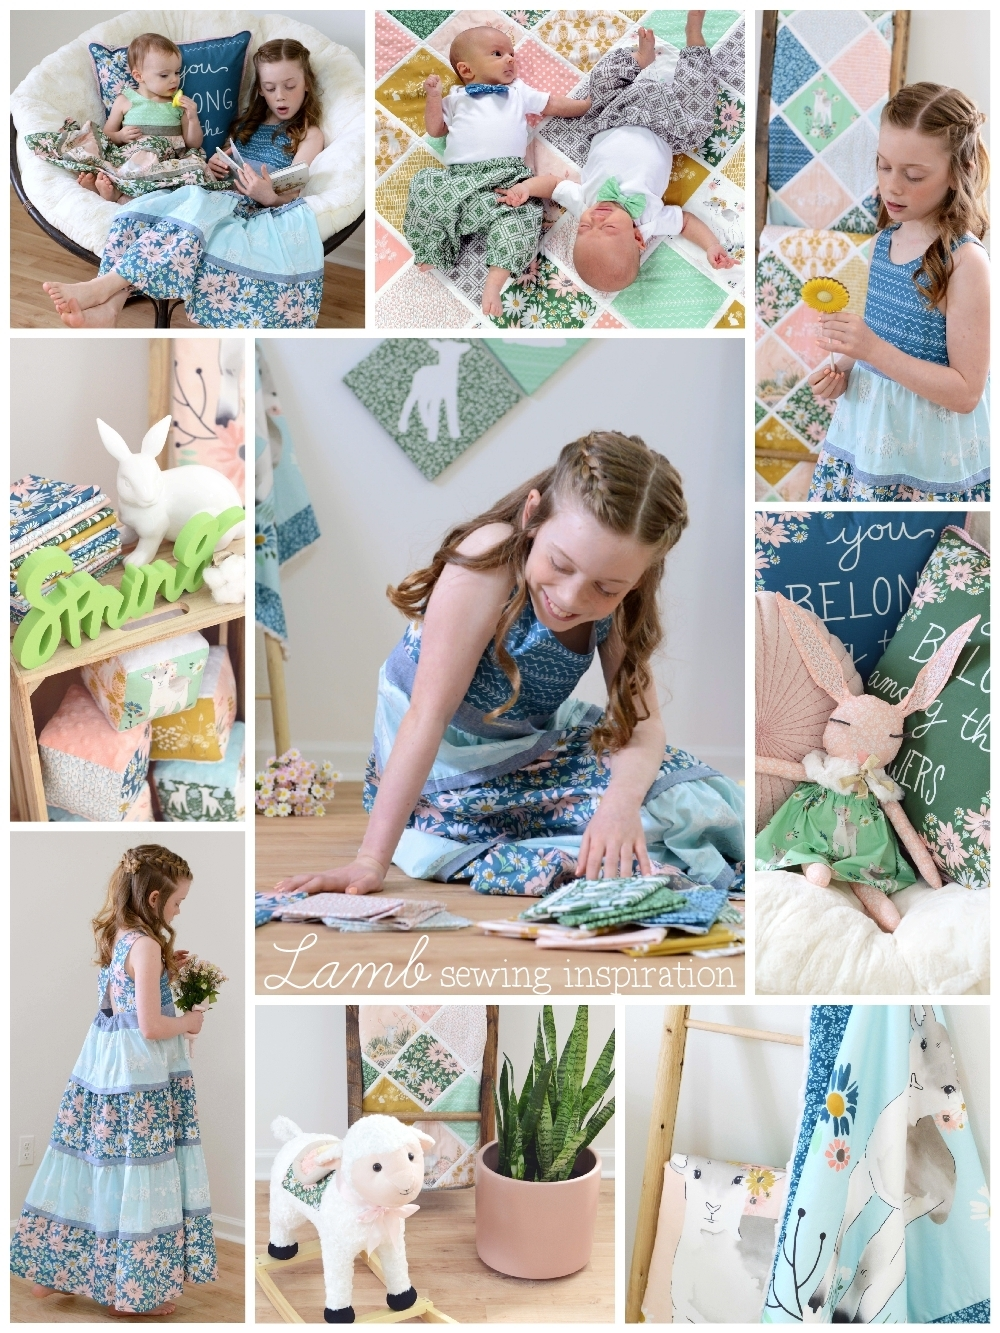 Lamb Fabric Sewing Inspiration 1000